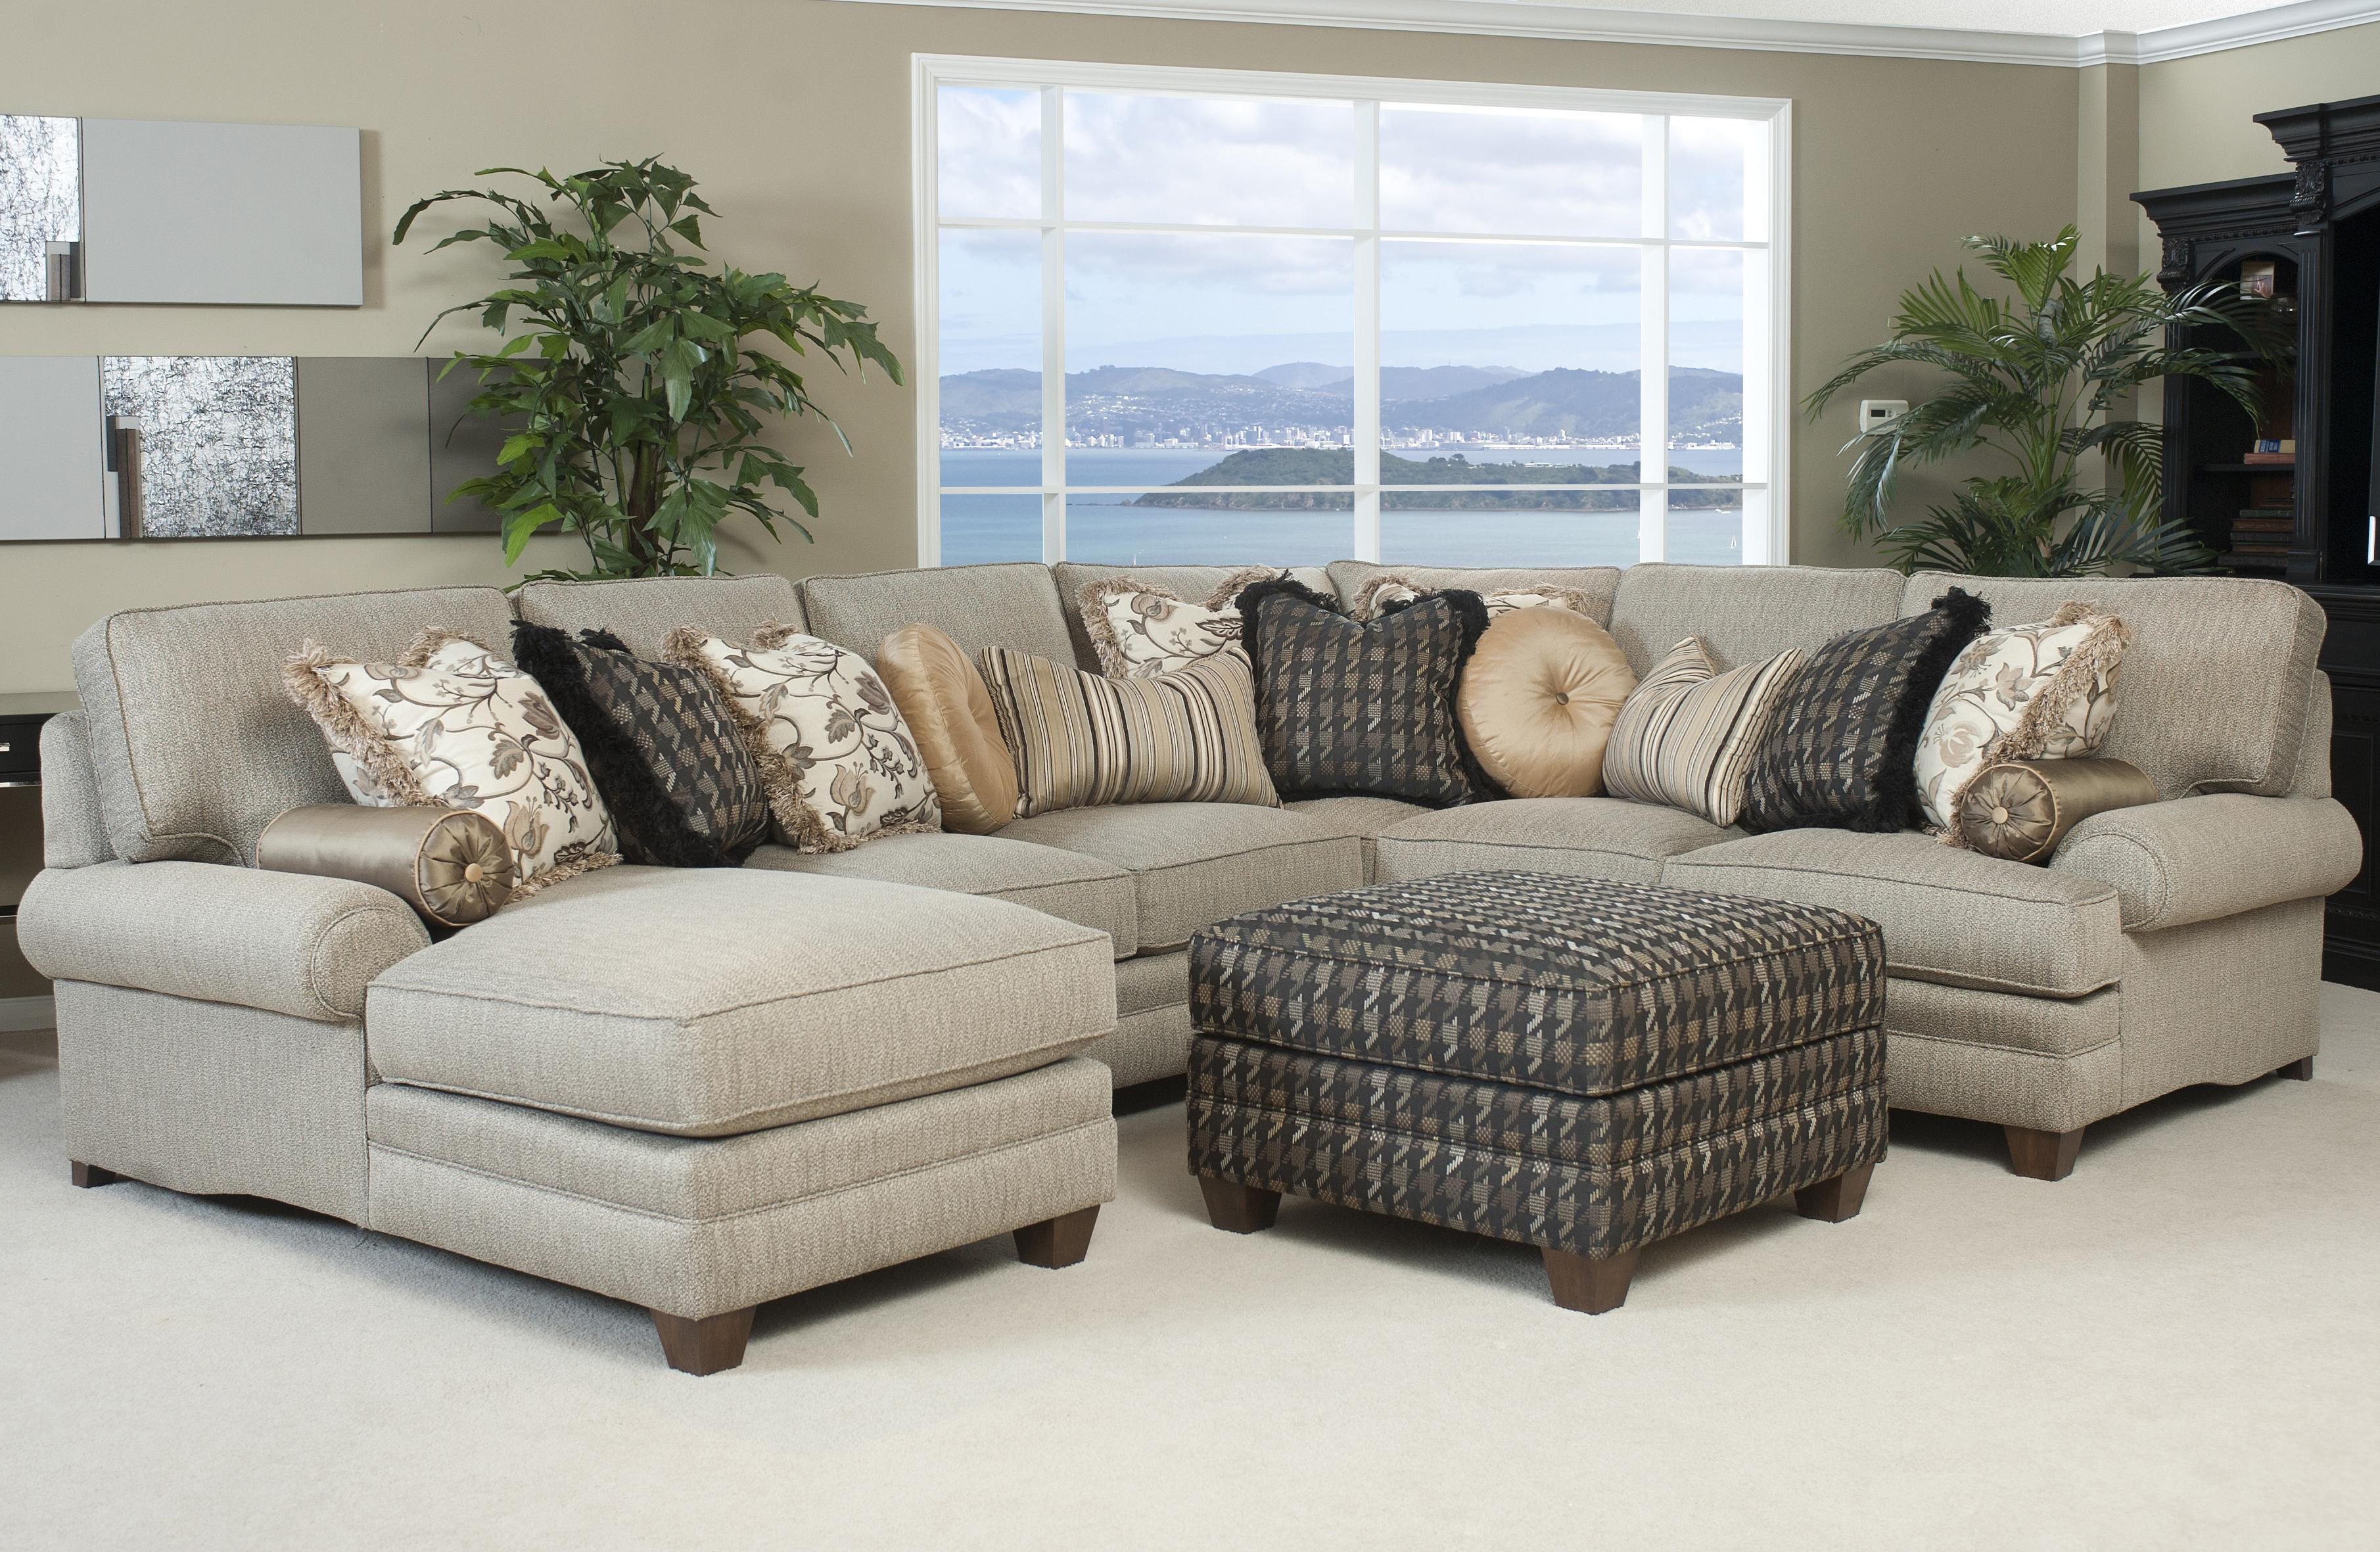 Most Comfortable Couches most comfortable couches for living room | free sofas loveseats